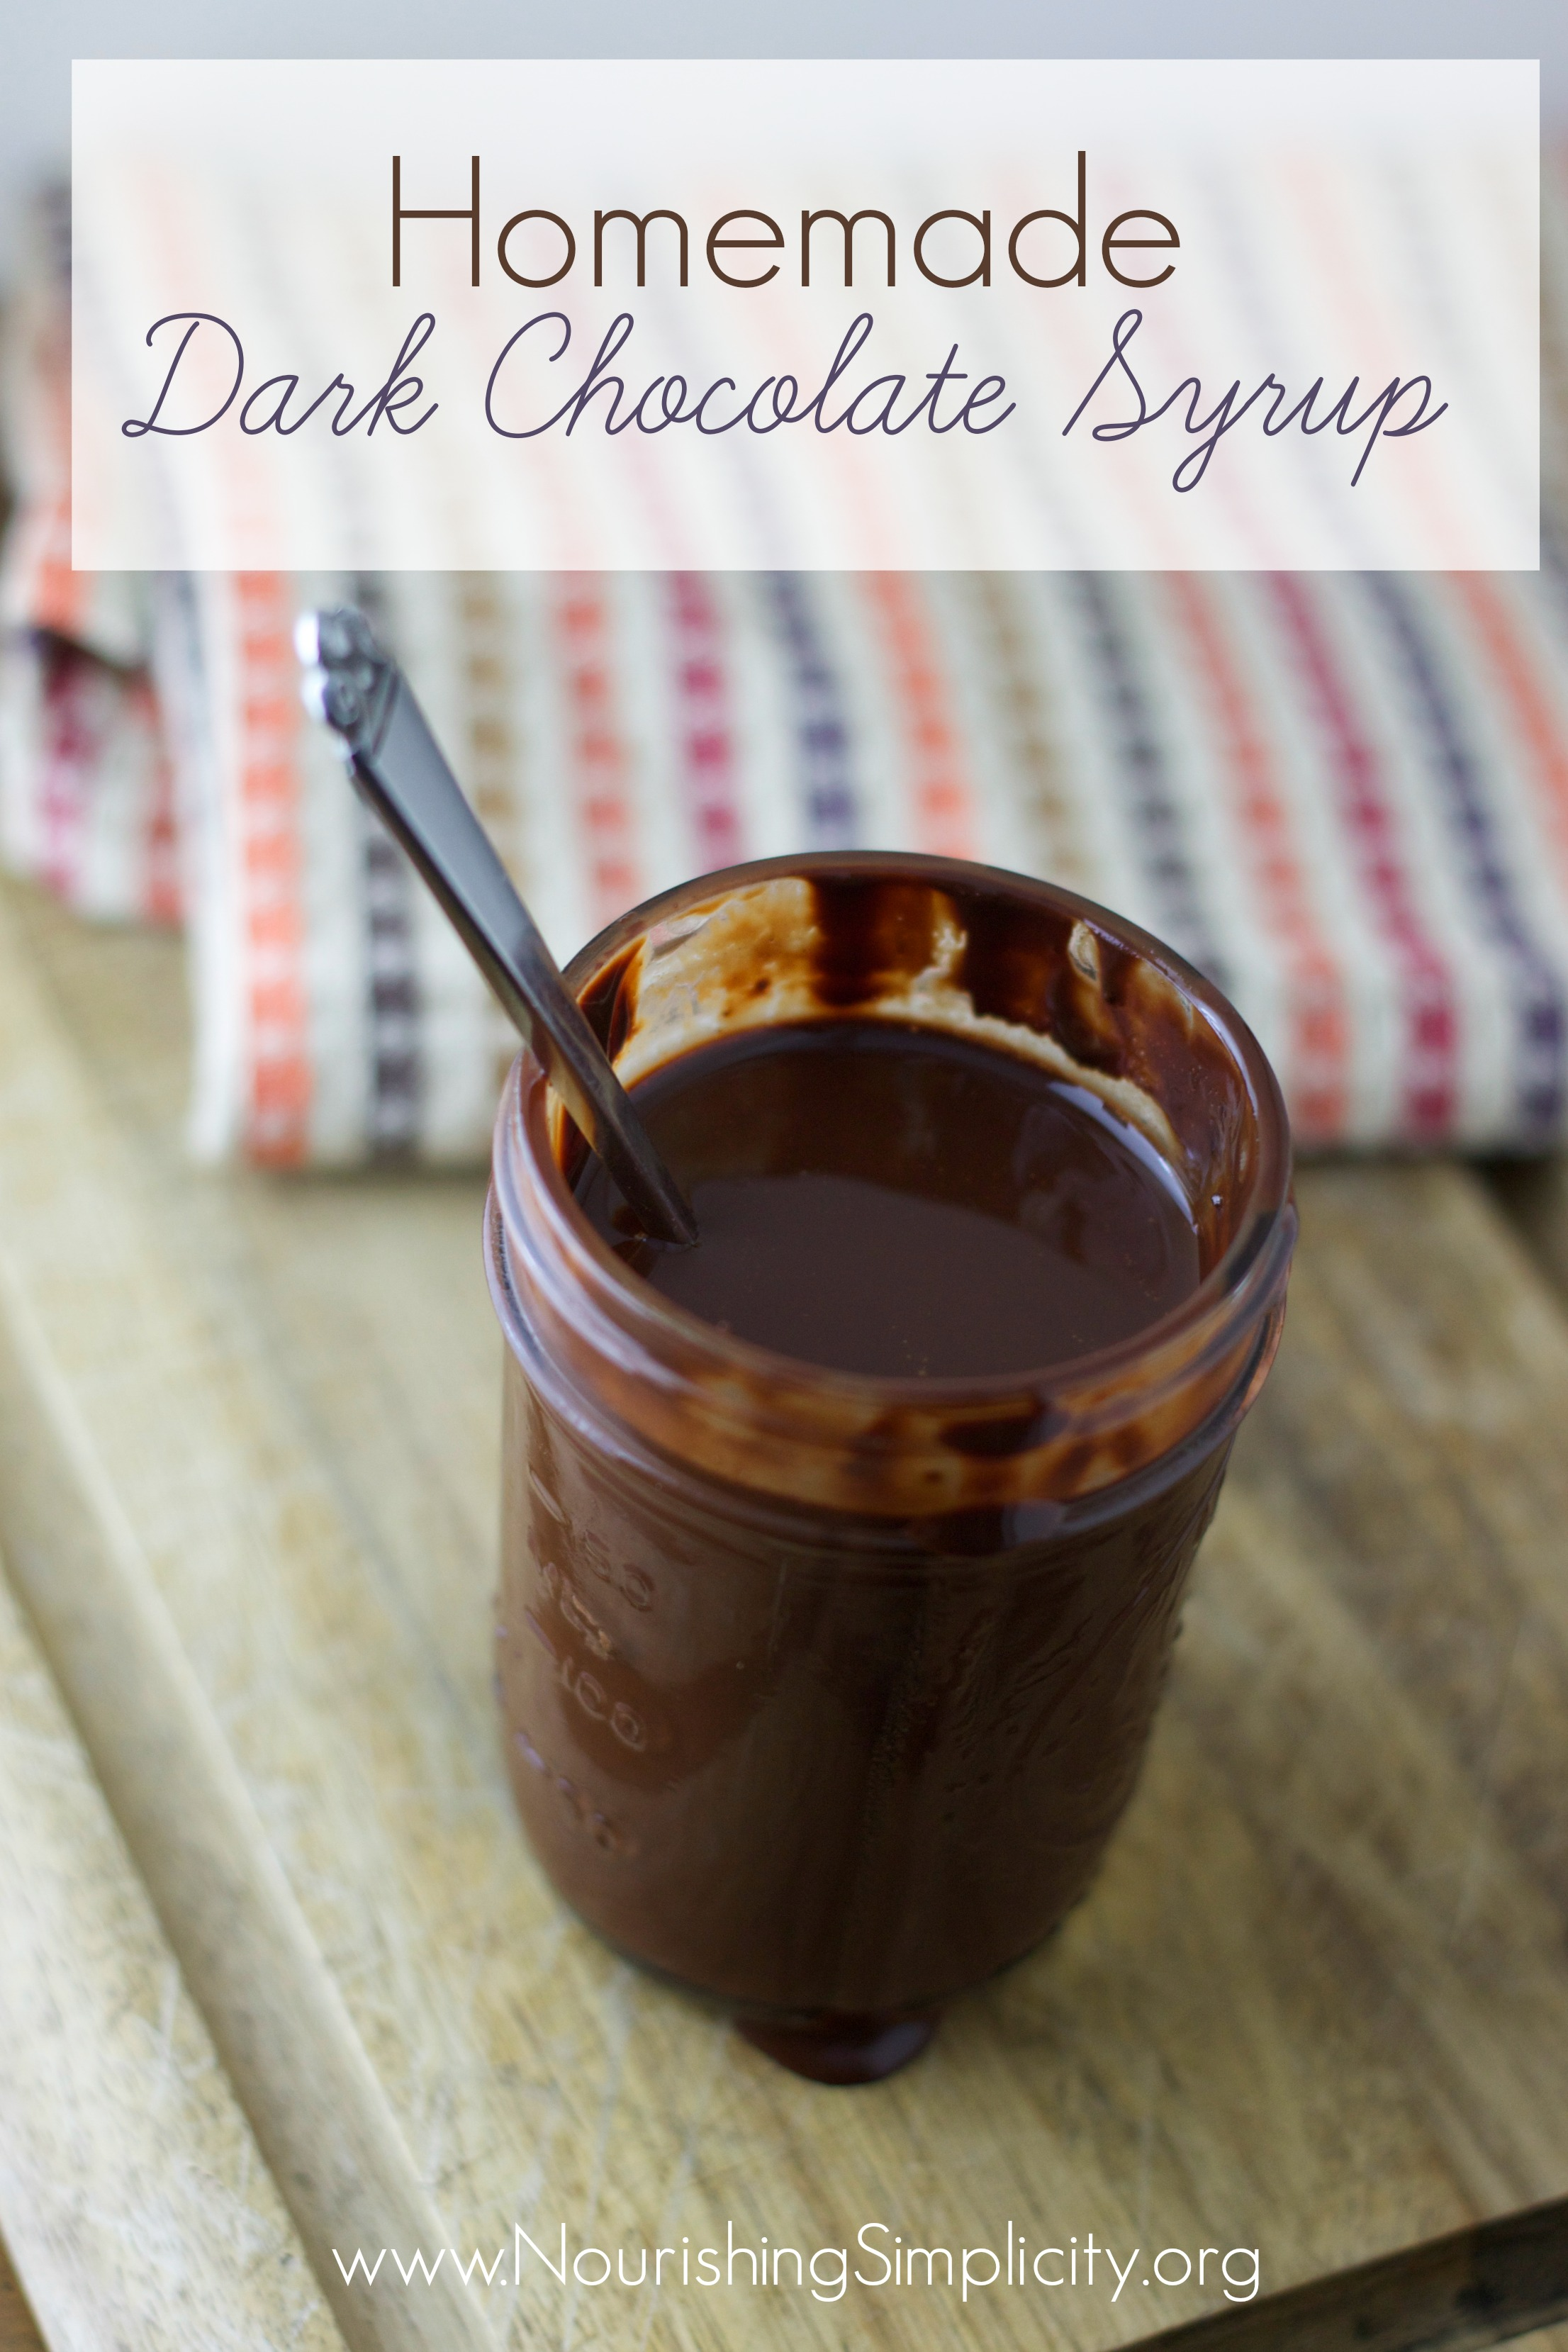 Homemade Dark Chocolate Syrup - Nourishing Simplicity